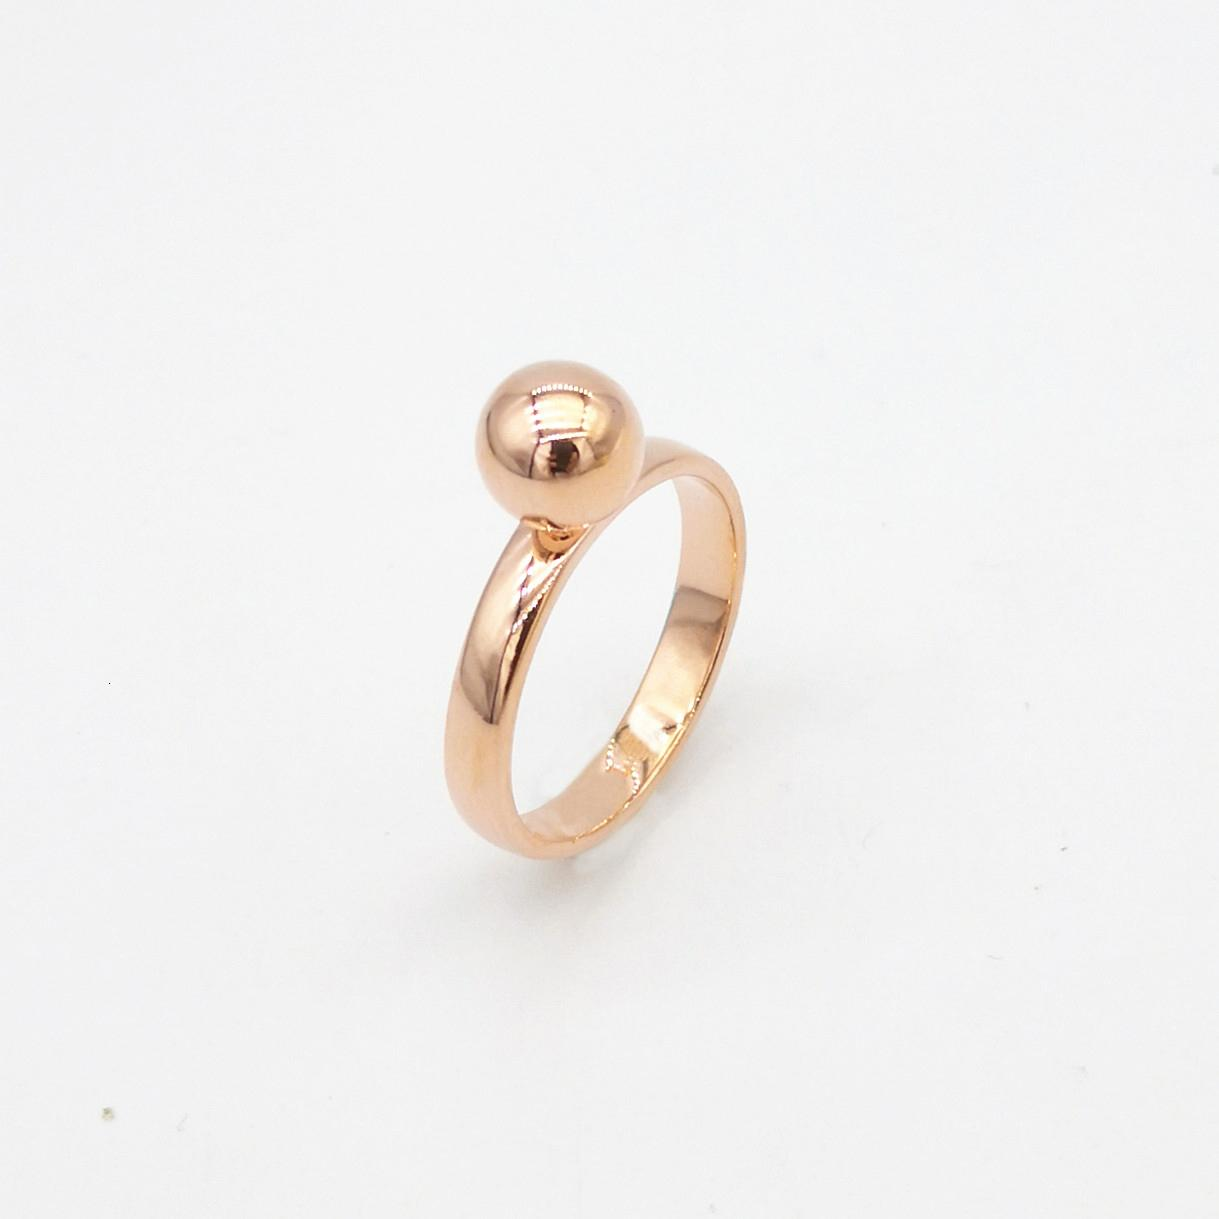 2021 New Classic Original Ms Sier Rose Gold 8 Mm Bead Couple Smooth Round Pearl Ring in Fashion Accessories Swqi